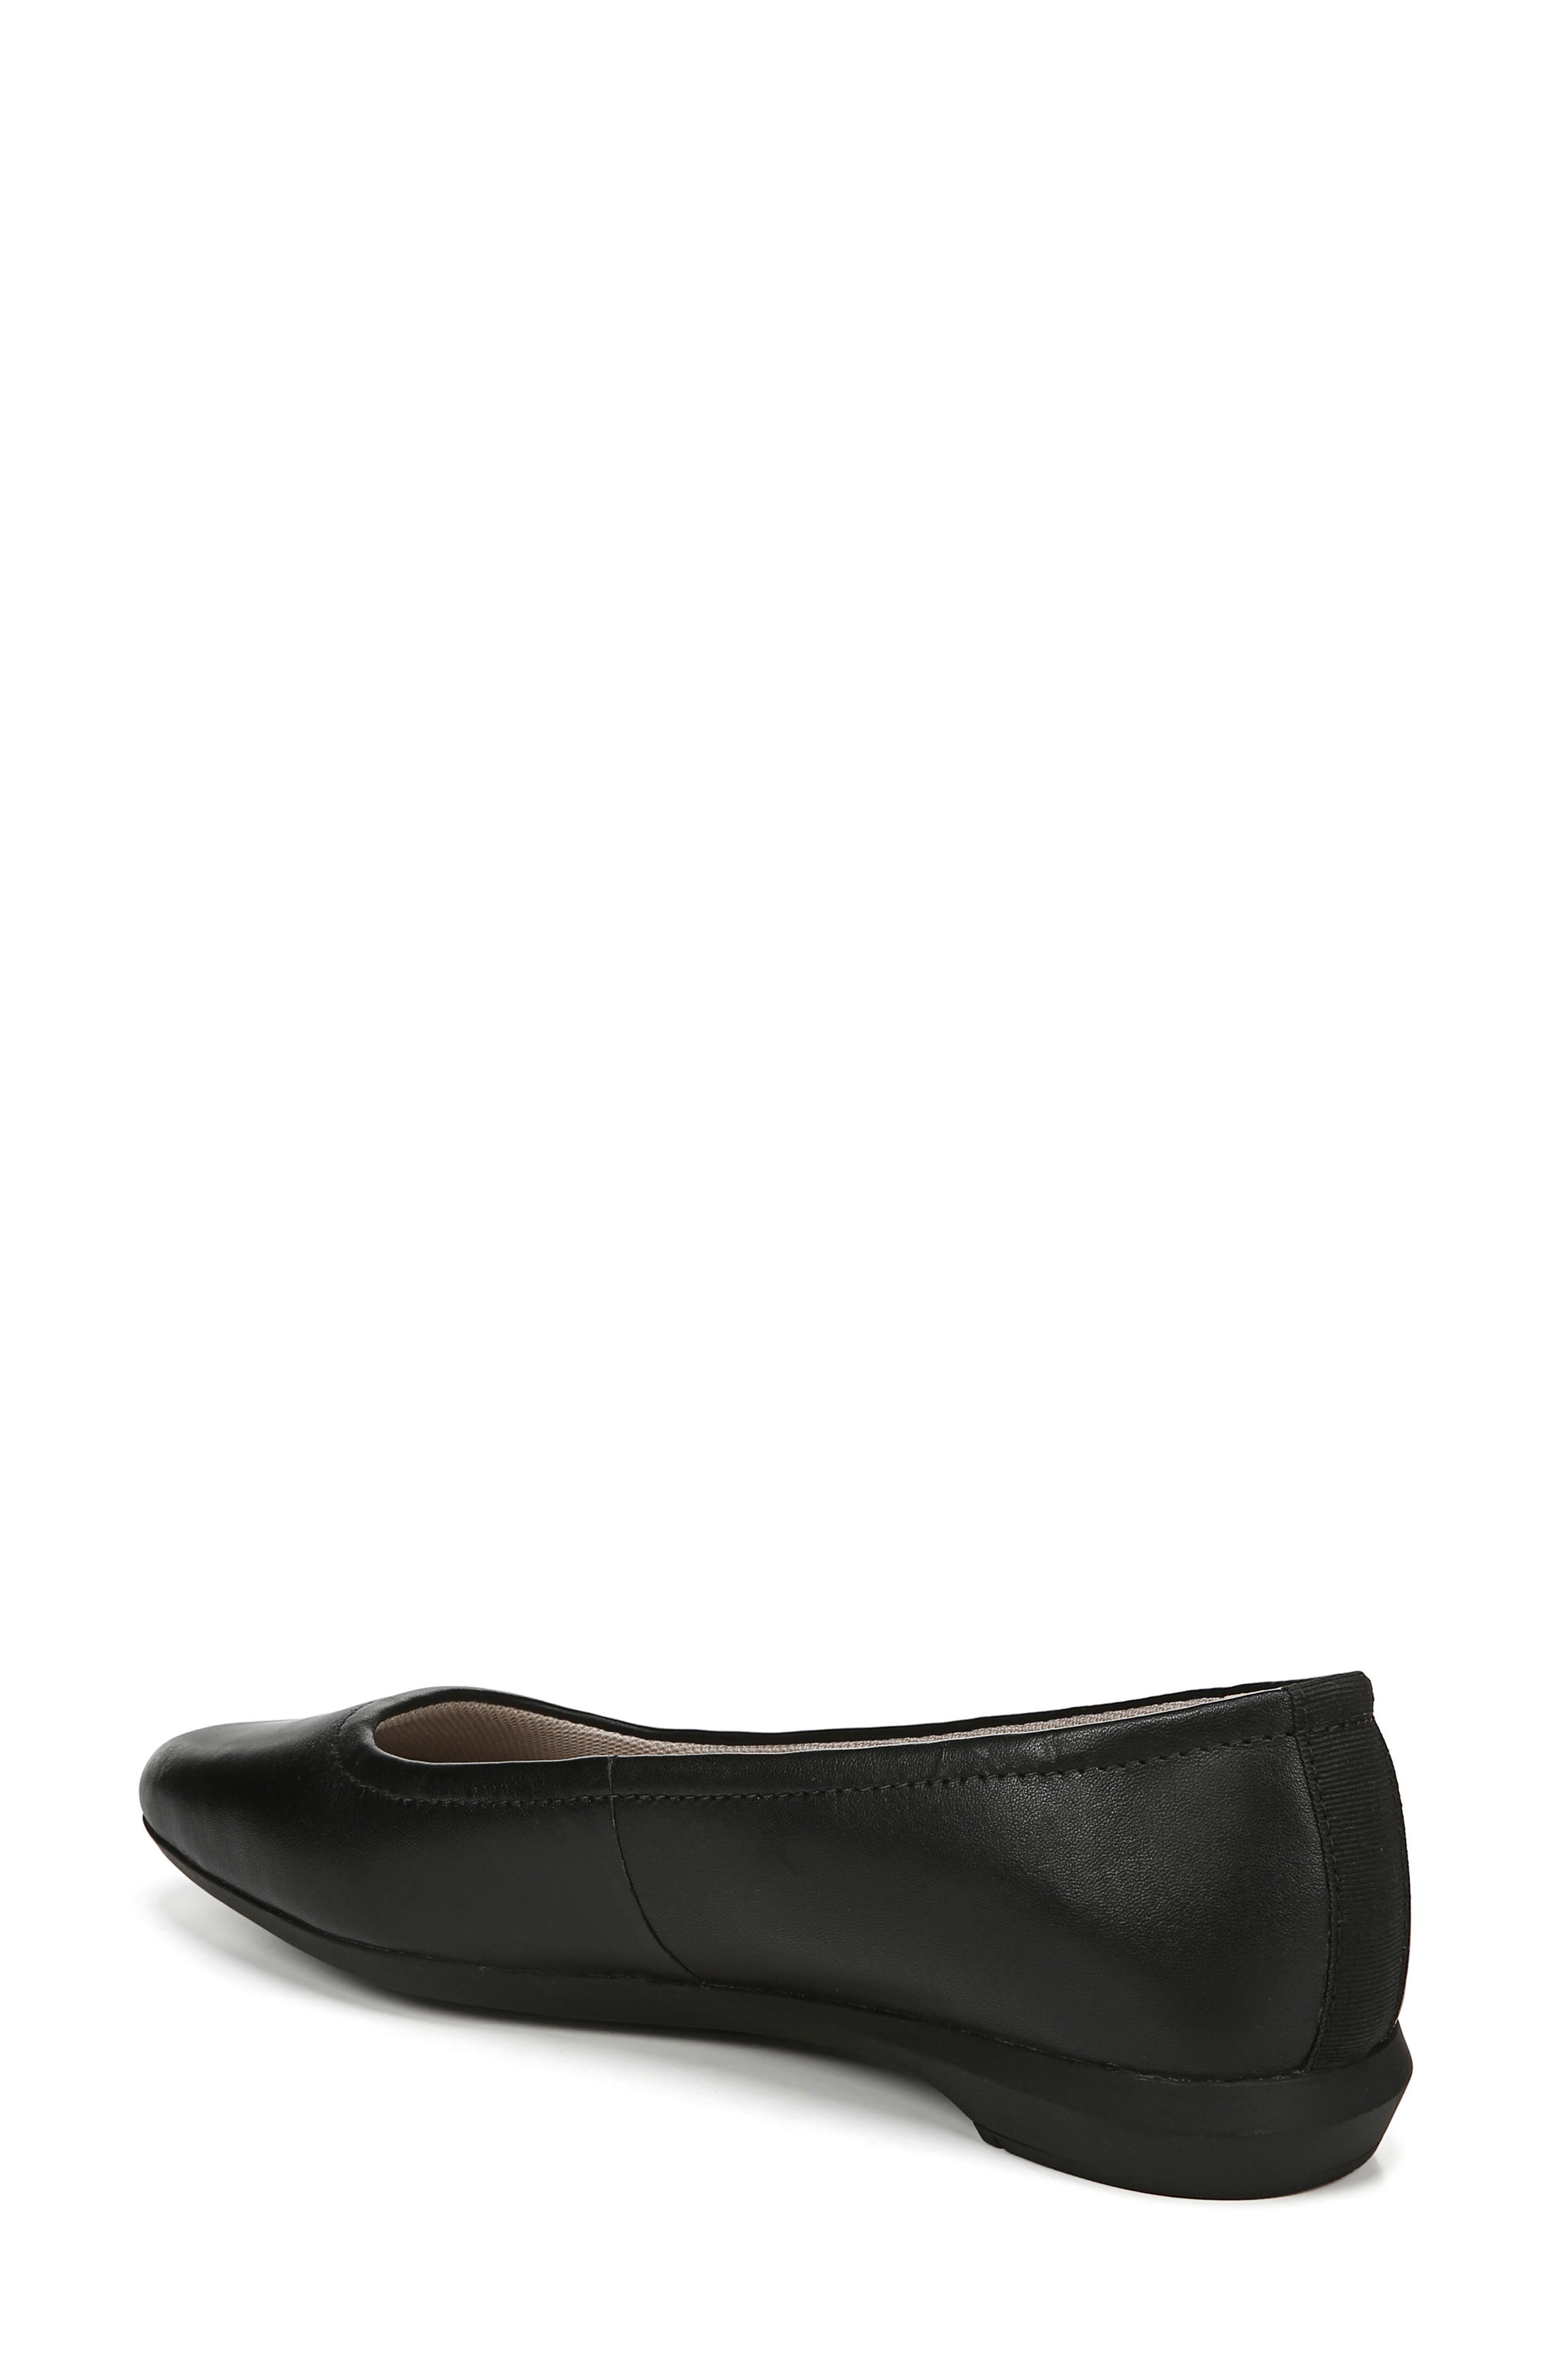 NATURALIZER,                             Alya Flat,                             Alternate thumbnail 2, color,                             BLACK LEATHER